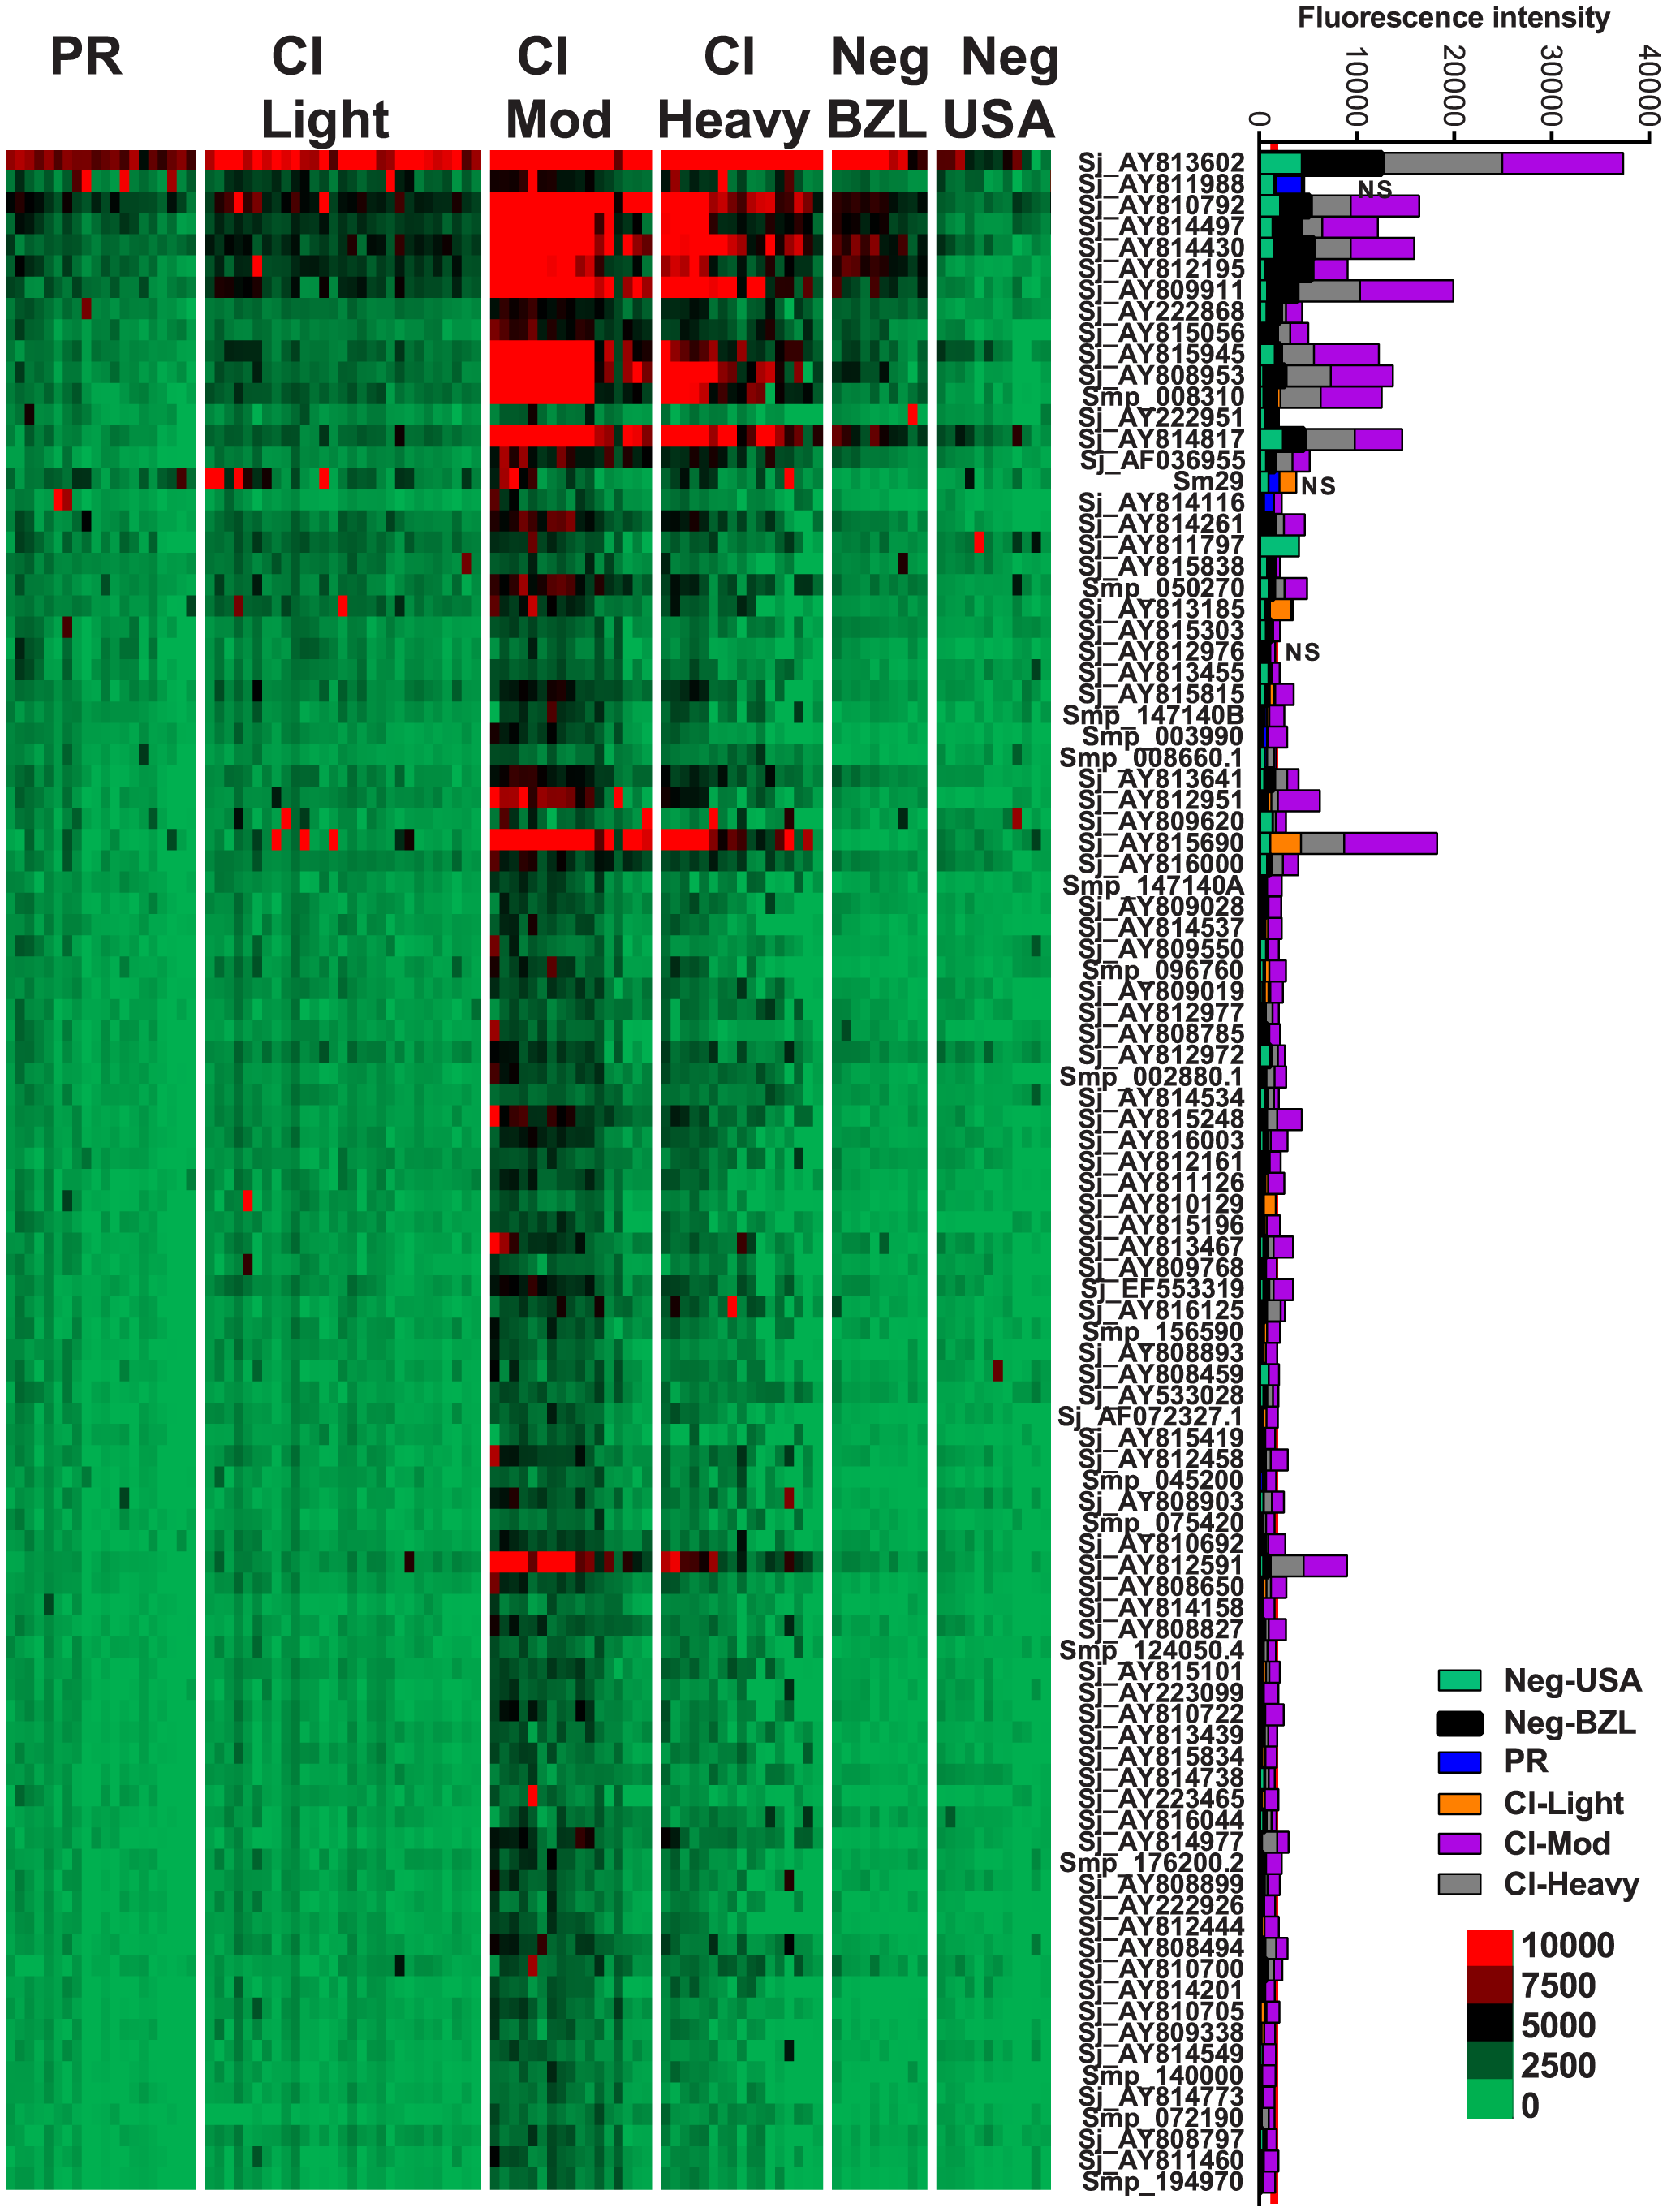 IgG3 reactivity profiles of resistant and susceptible human cohorts to <i>Schistosoma</i> proteins printed on a proteome microarray.